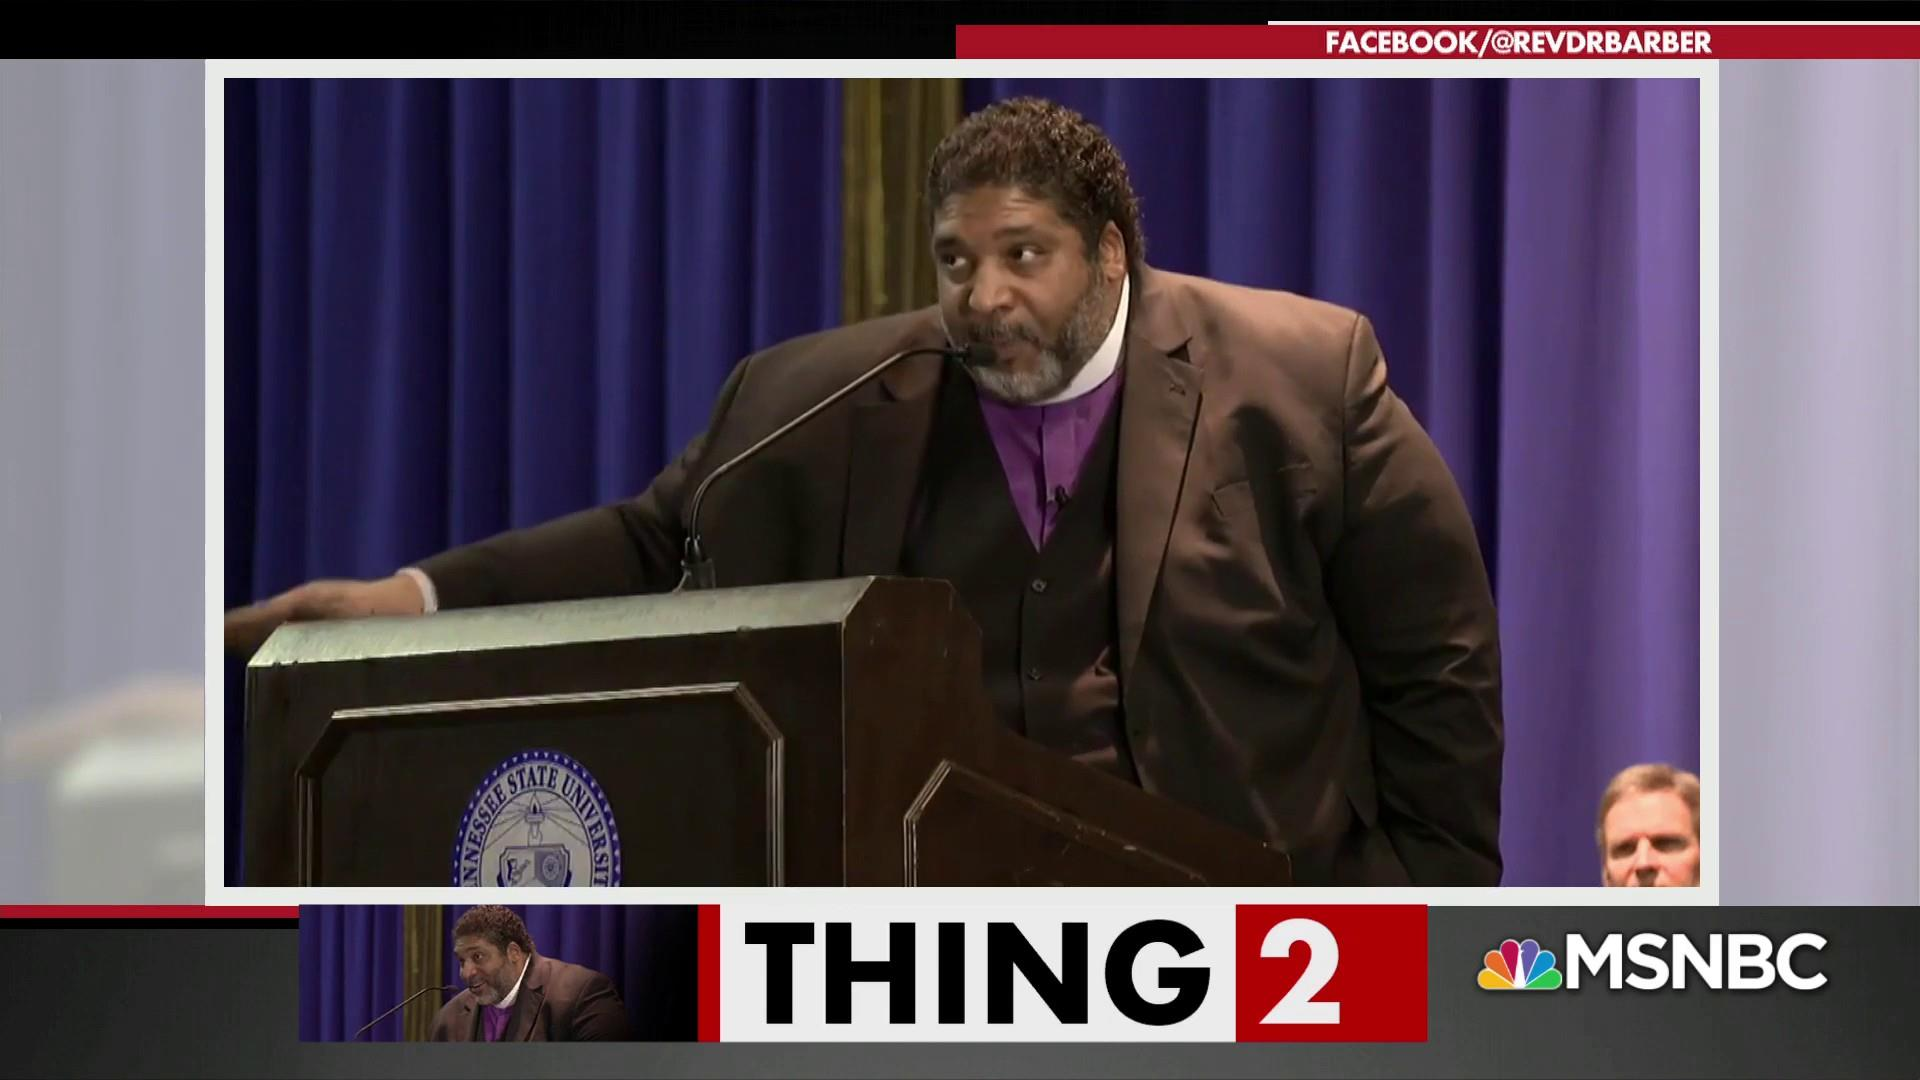 Rev. Dr. Barber blasts politicians for hypocrisy about MLK